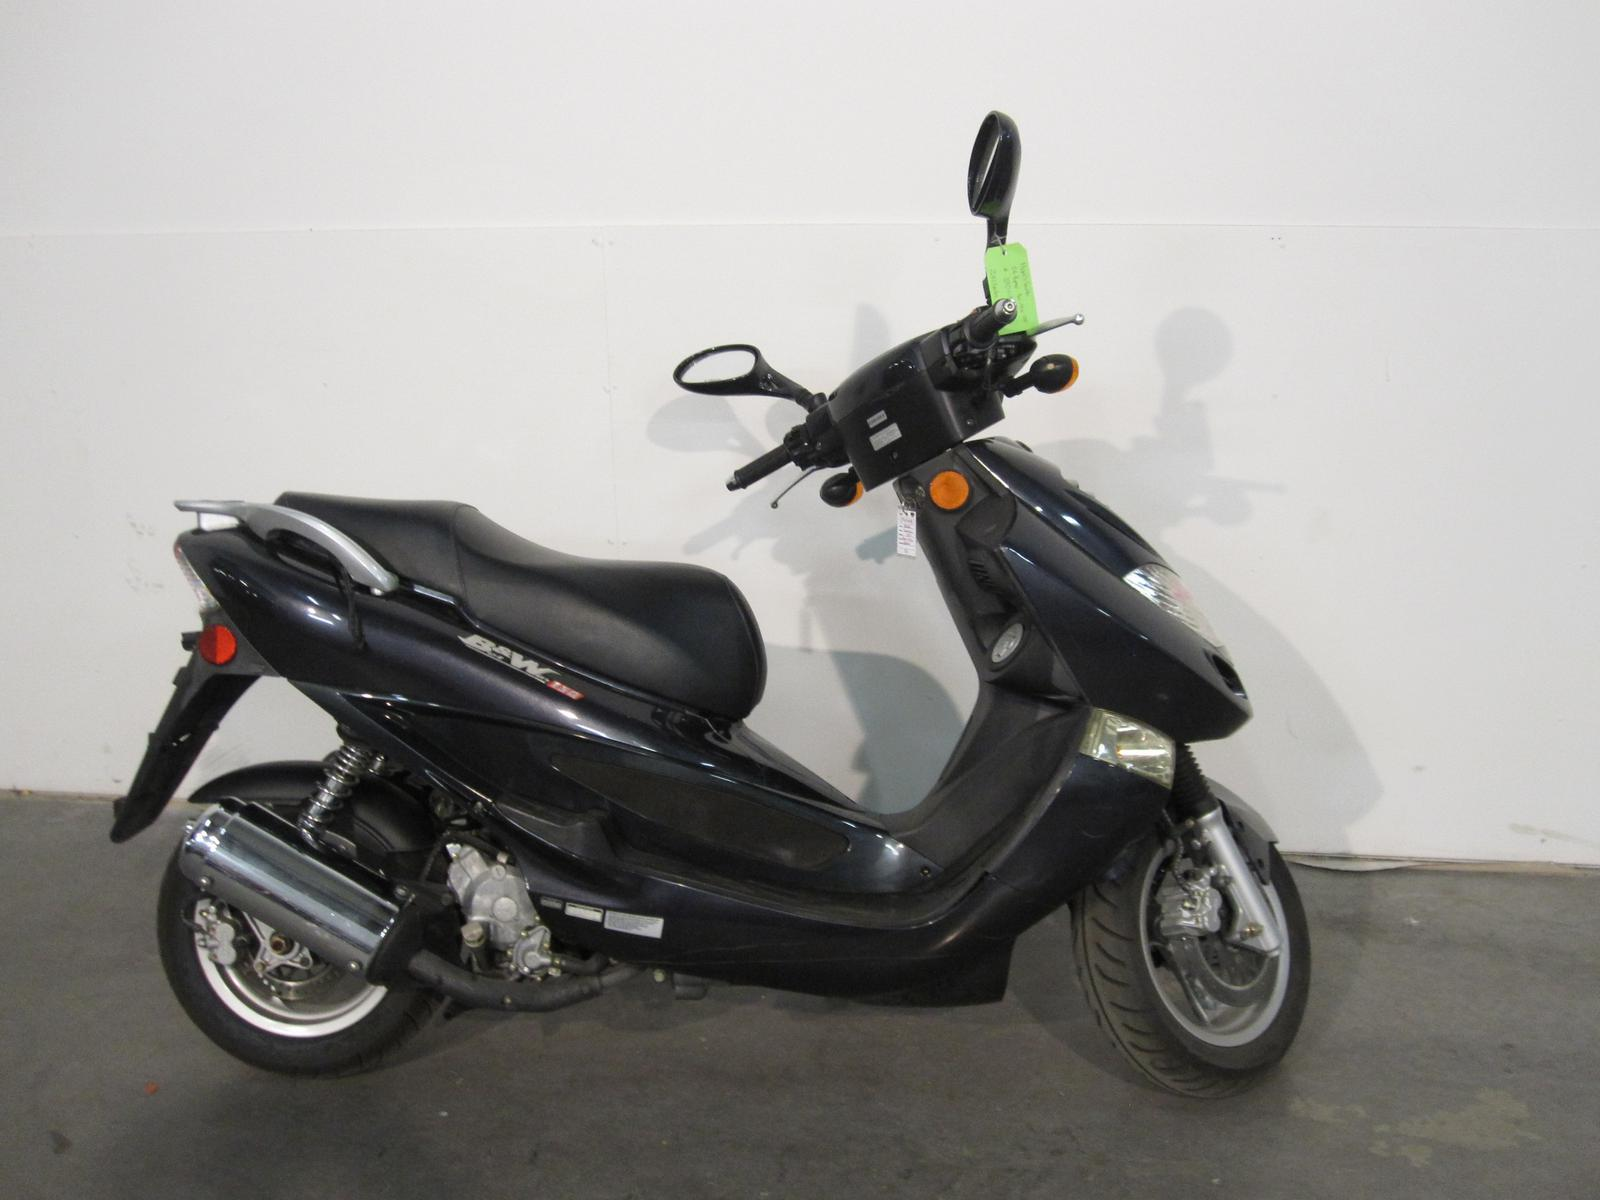 2006 Kymco Bet & Win 150, motorcycle listing